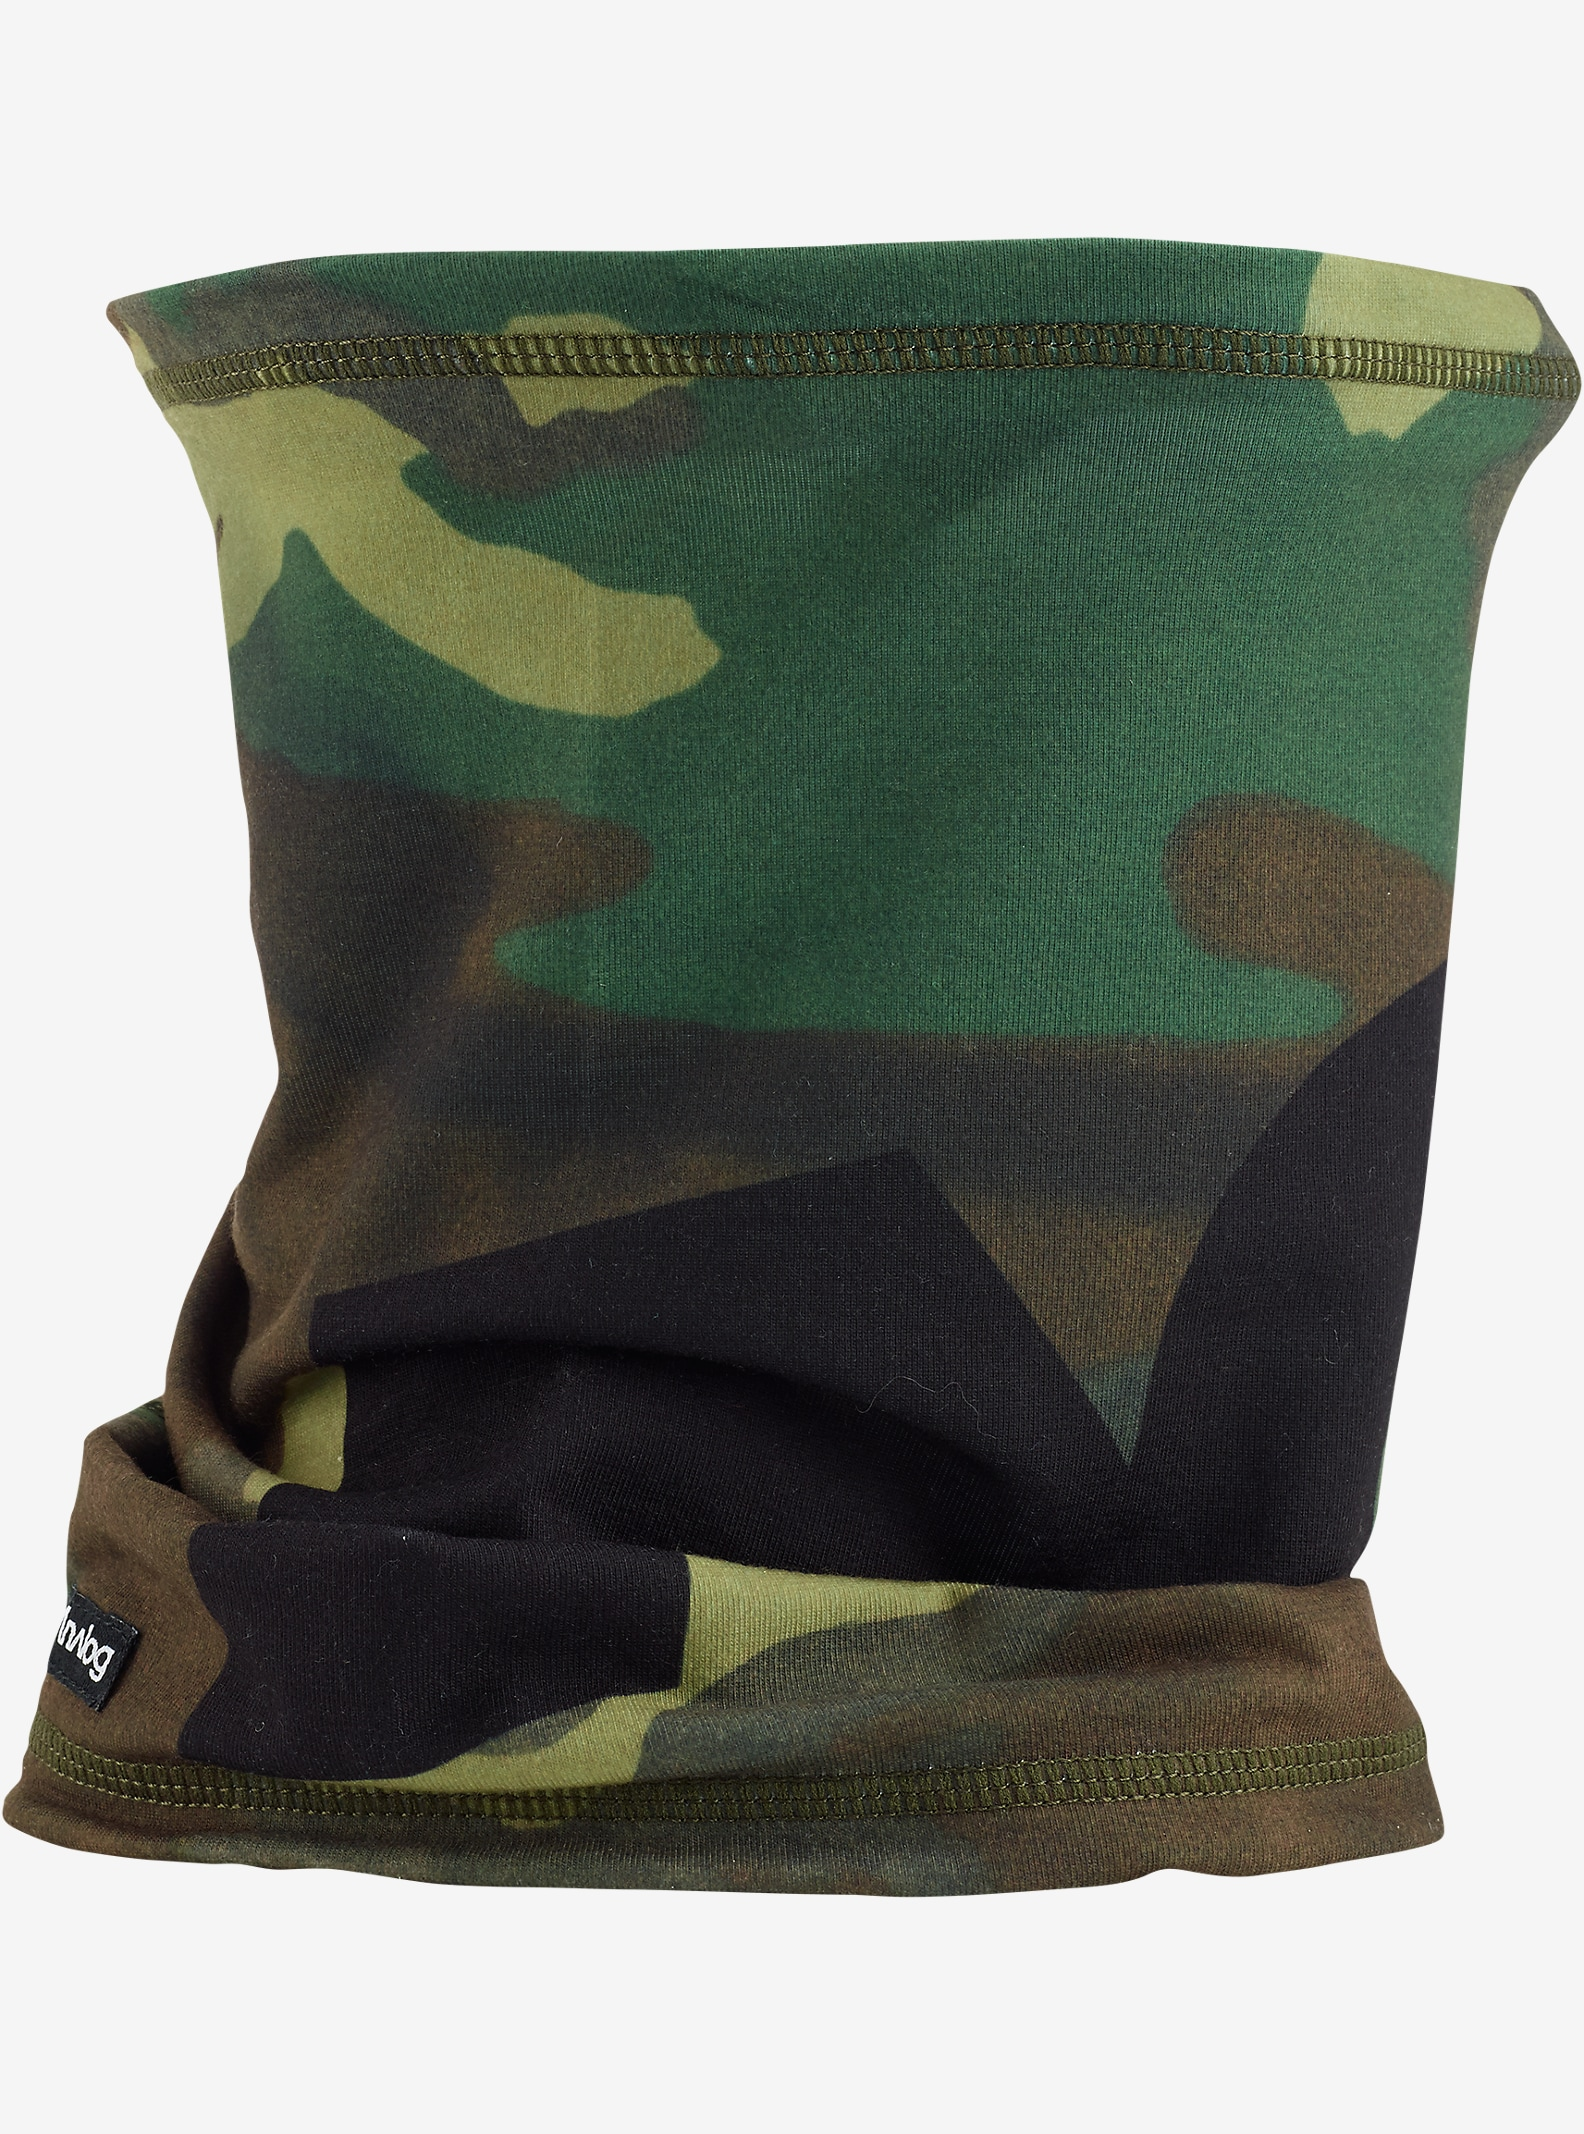 Analog Icon Neck Warmer shown in Surplus Camo